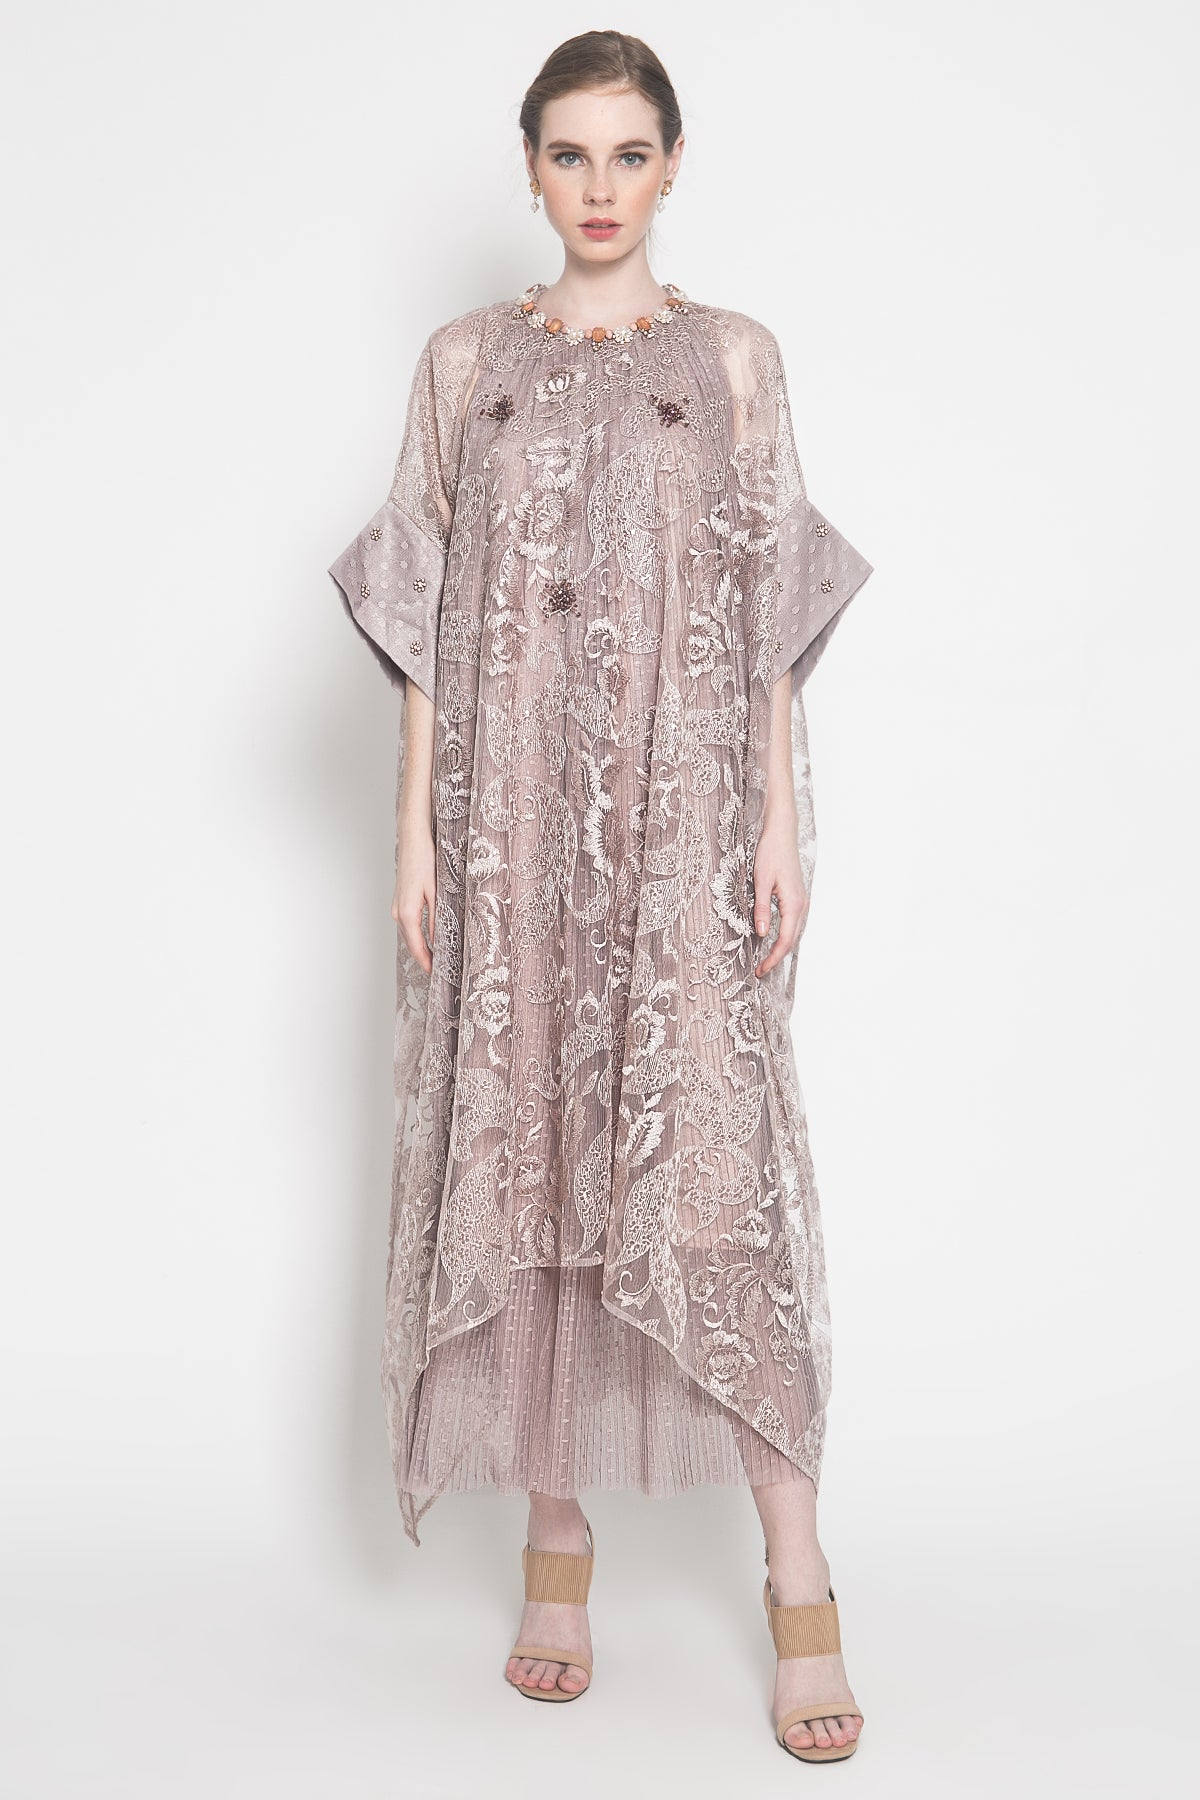 Seraphima Maxi Dress in Serenity